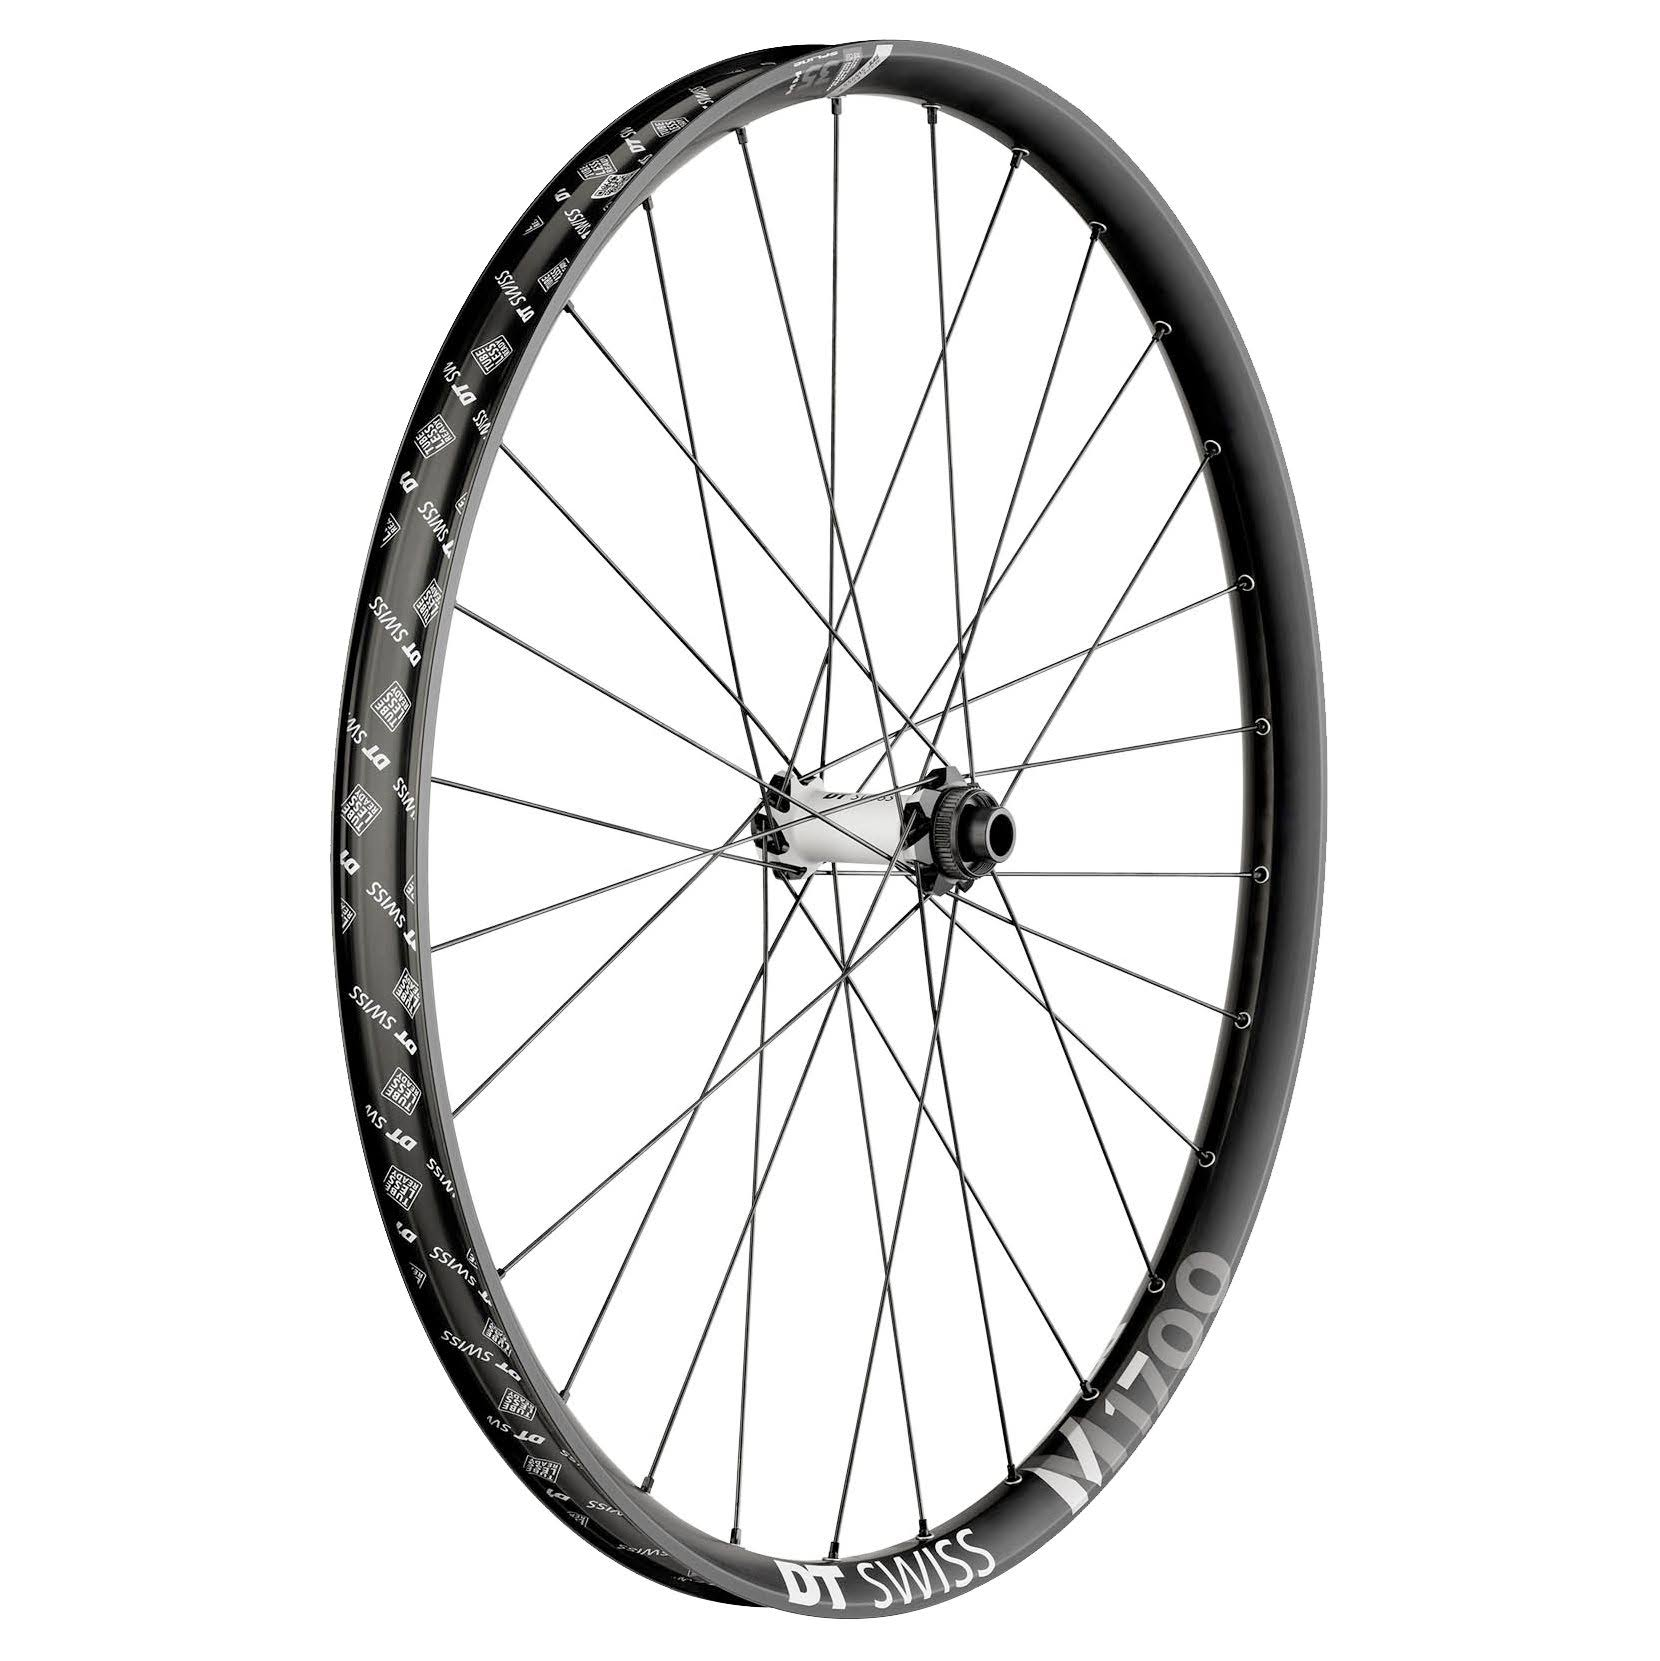 "DT Swiss M1700 Spline 35 Front Wheel: 27.5"", 15x110mm, Centerlock"